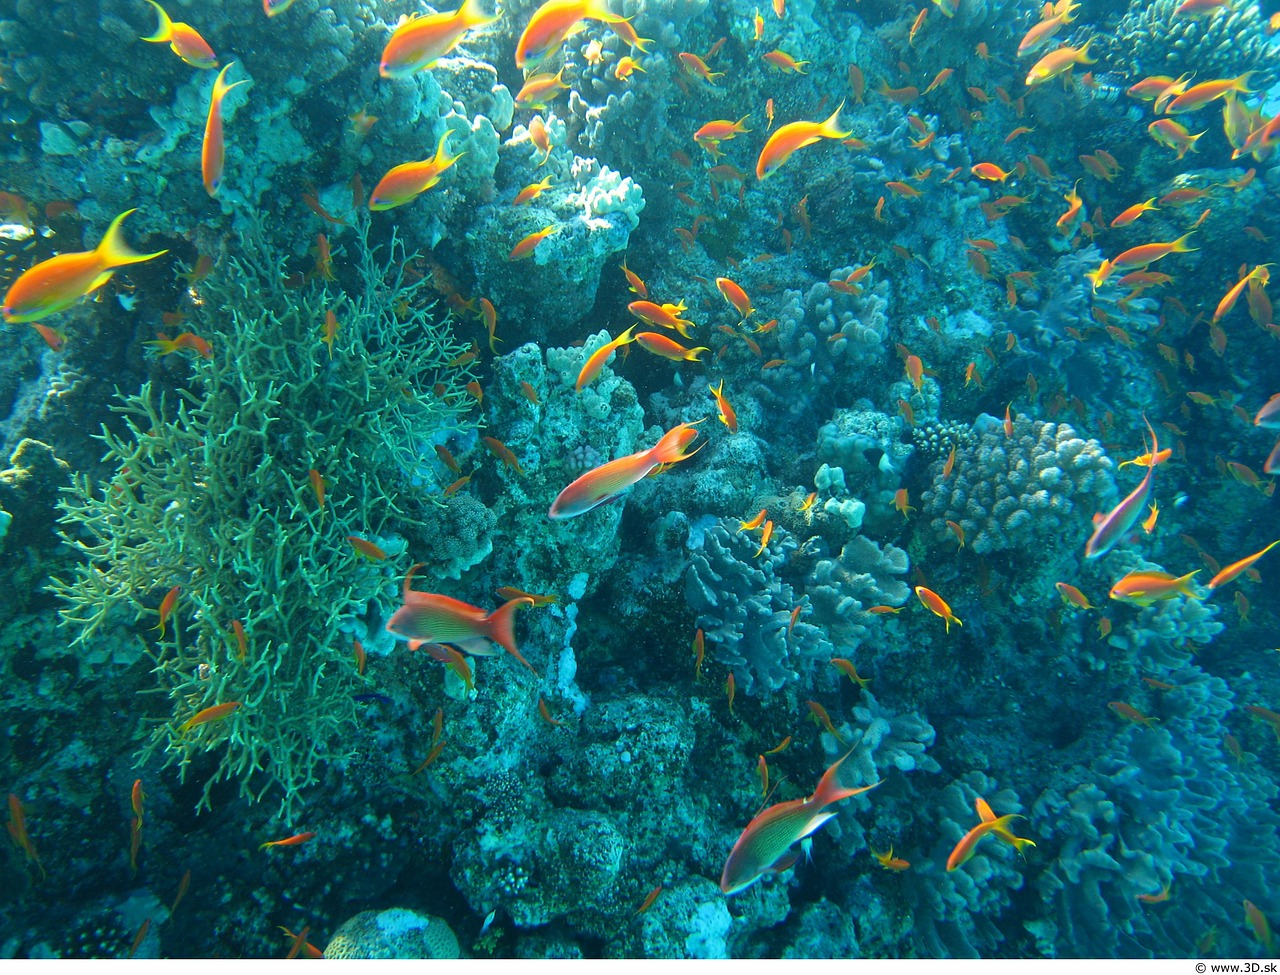 Warming Ocean Waters How It Impacts Fish And Marine Life